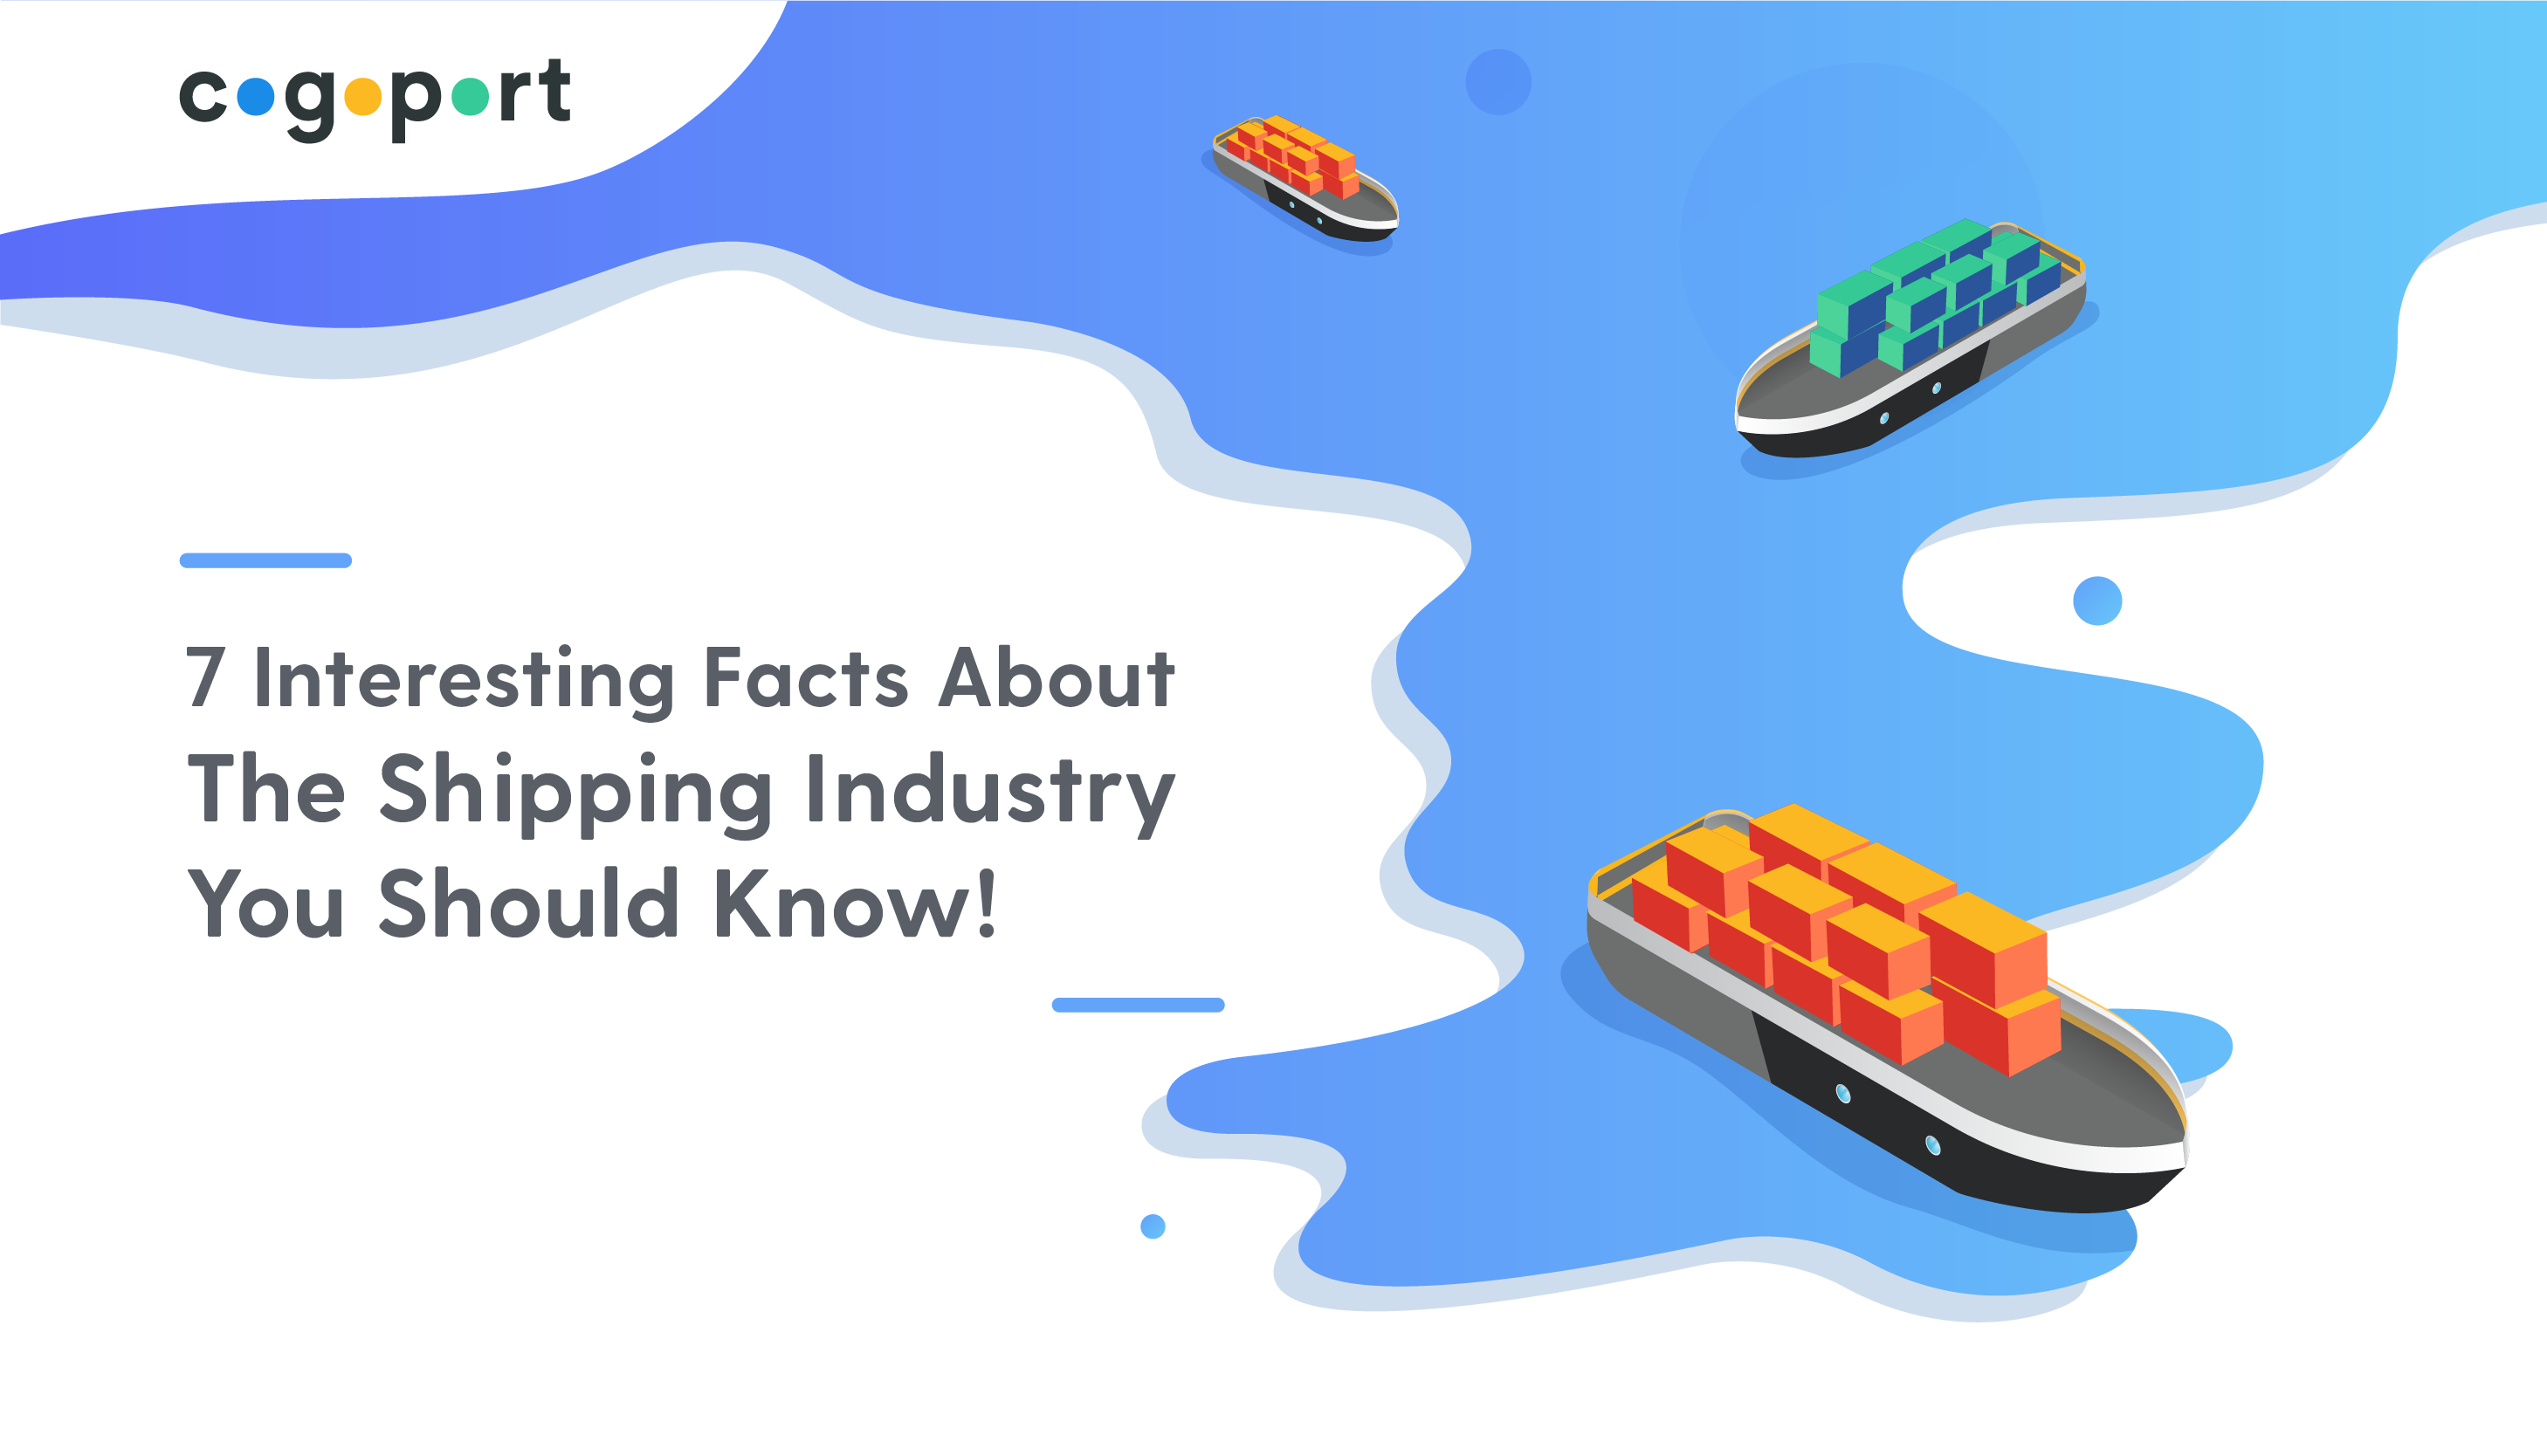 7  Interesting Facts About the Shipping Industry You Should Know!